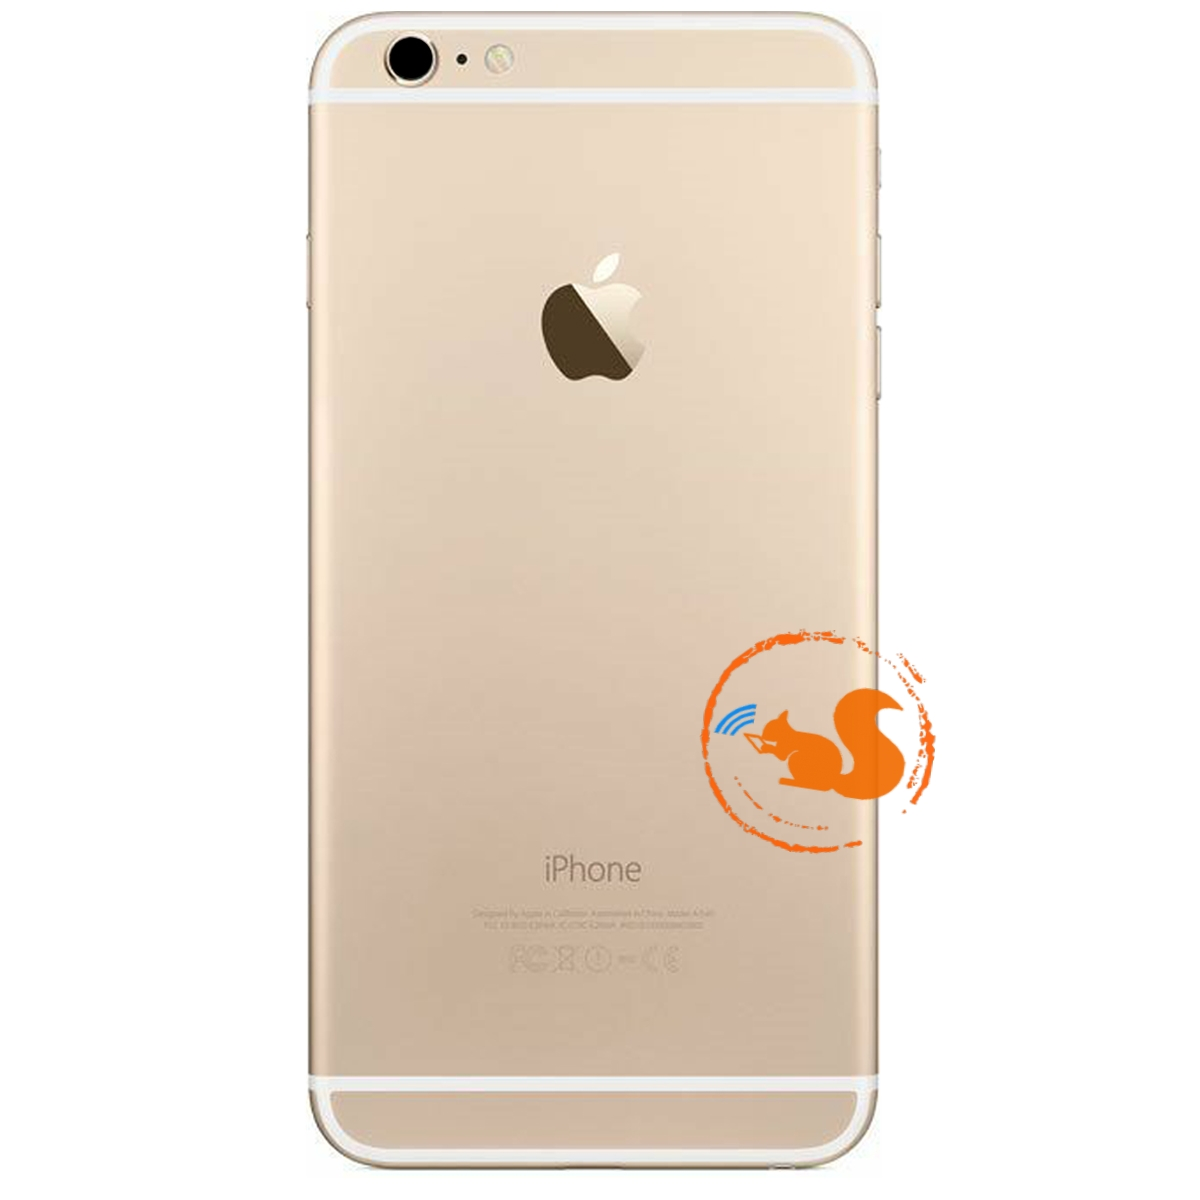 Xuong-vo-iPhone-6Plus-gold